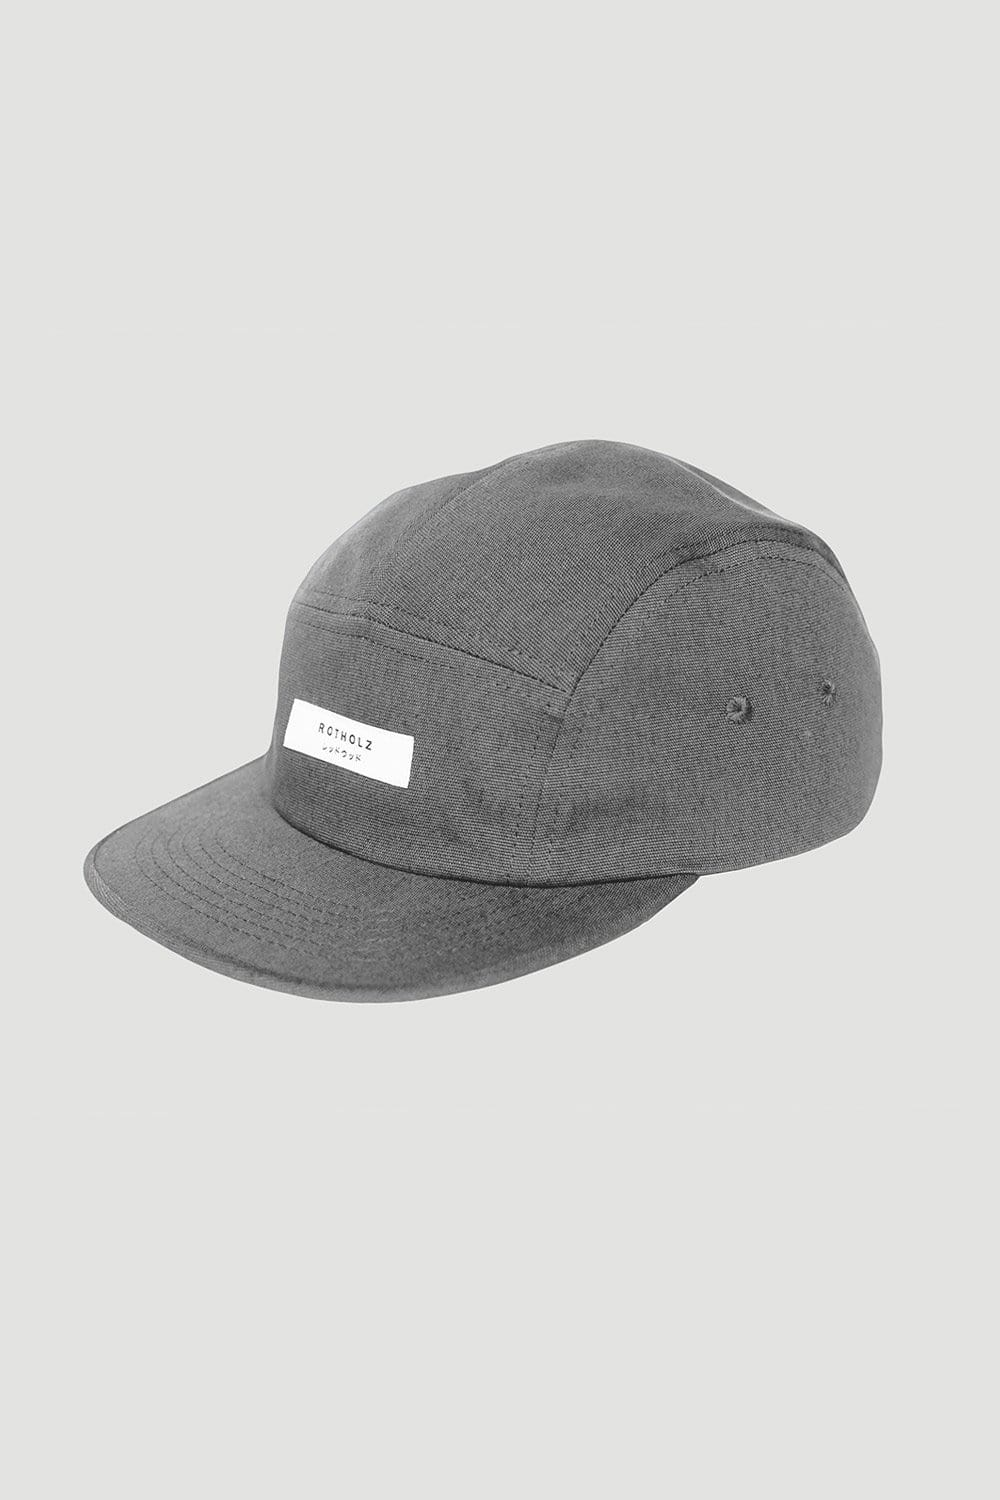 Rotholz Hats & Caps 'Label' Bio 5-Panel Grau